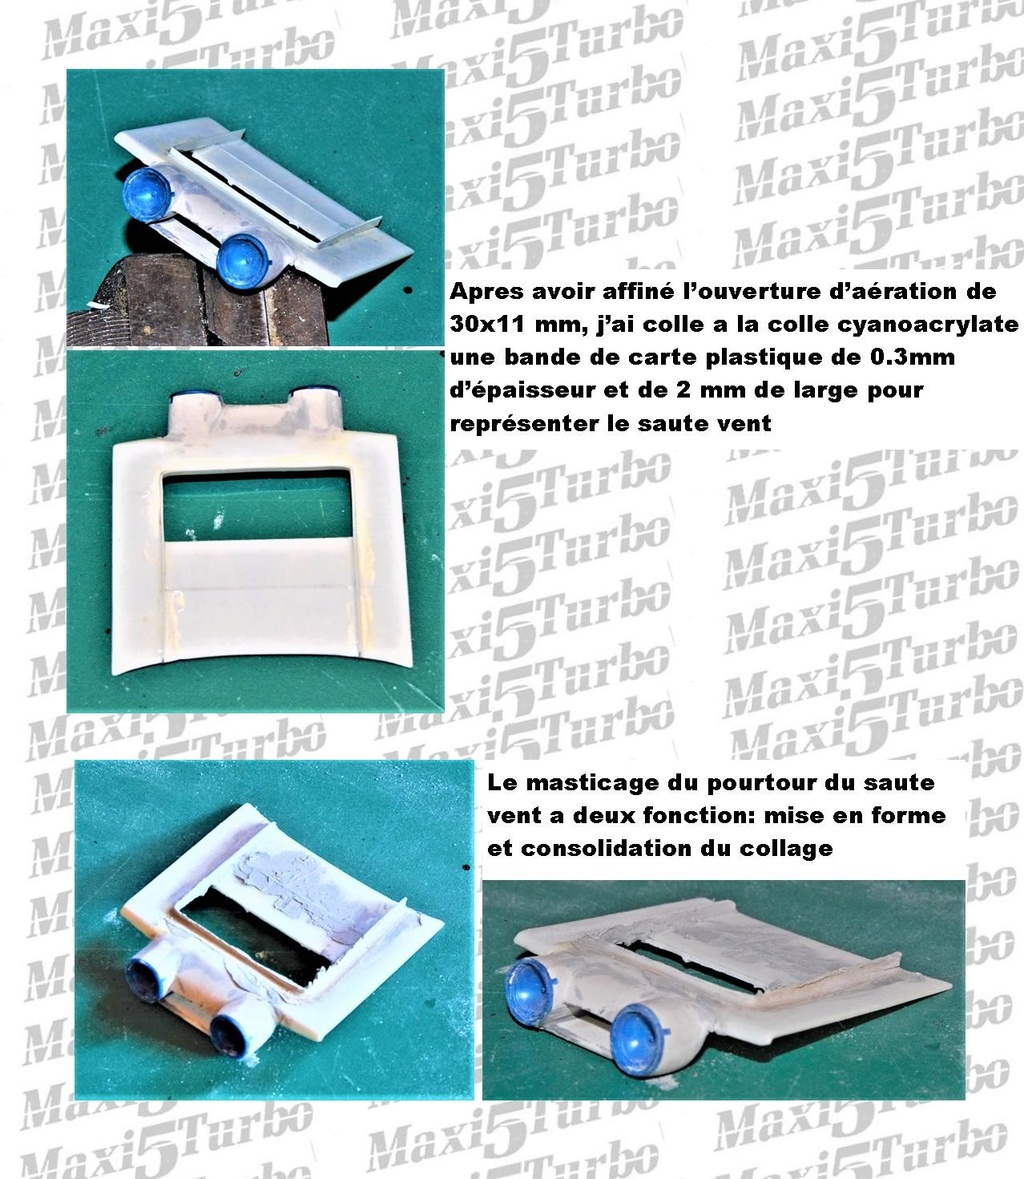 (1/24) Renault 5 Maxi turbo Ref 80717 ( Hors delai ) - Page 2 2311